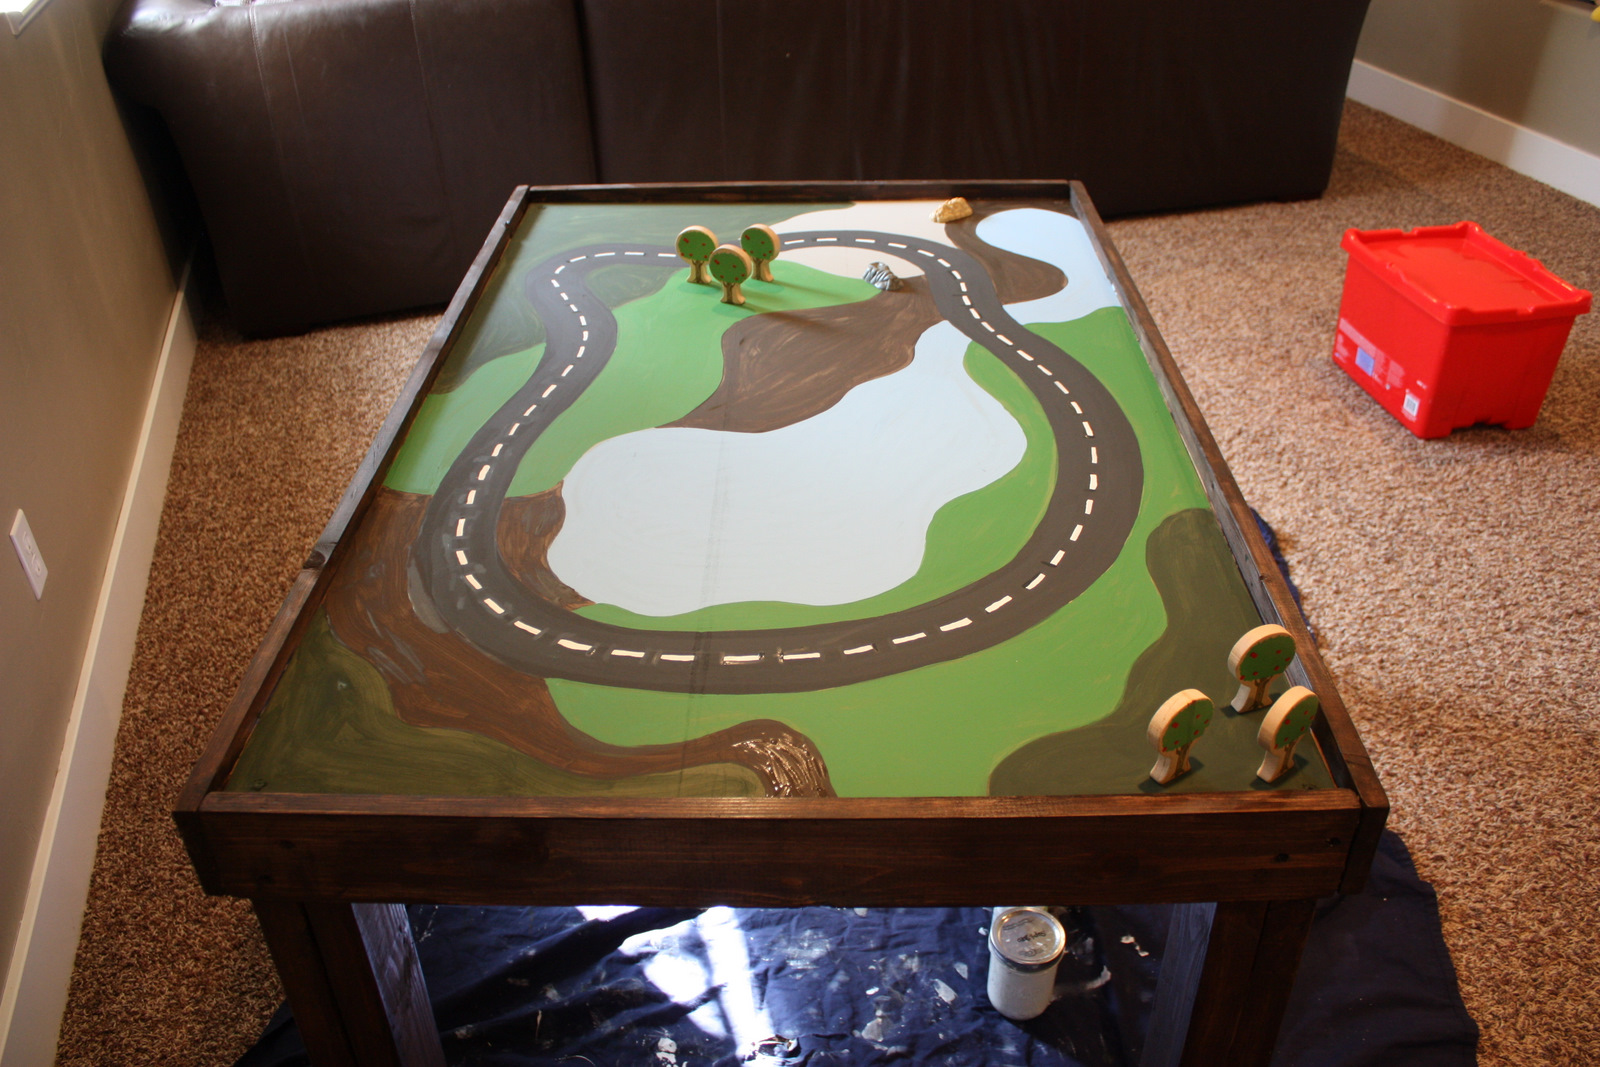 COUNTRY GIRL HOME : Our new DIY train table